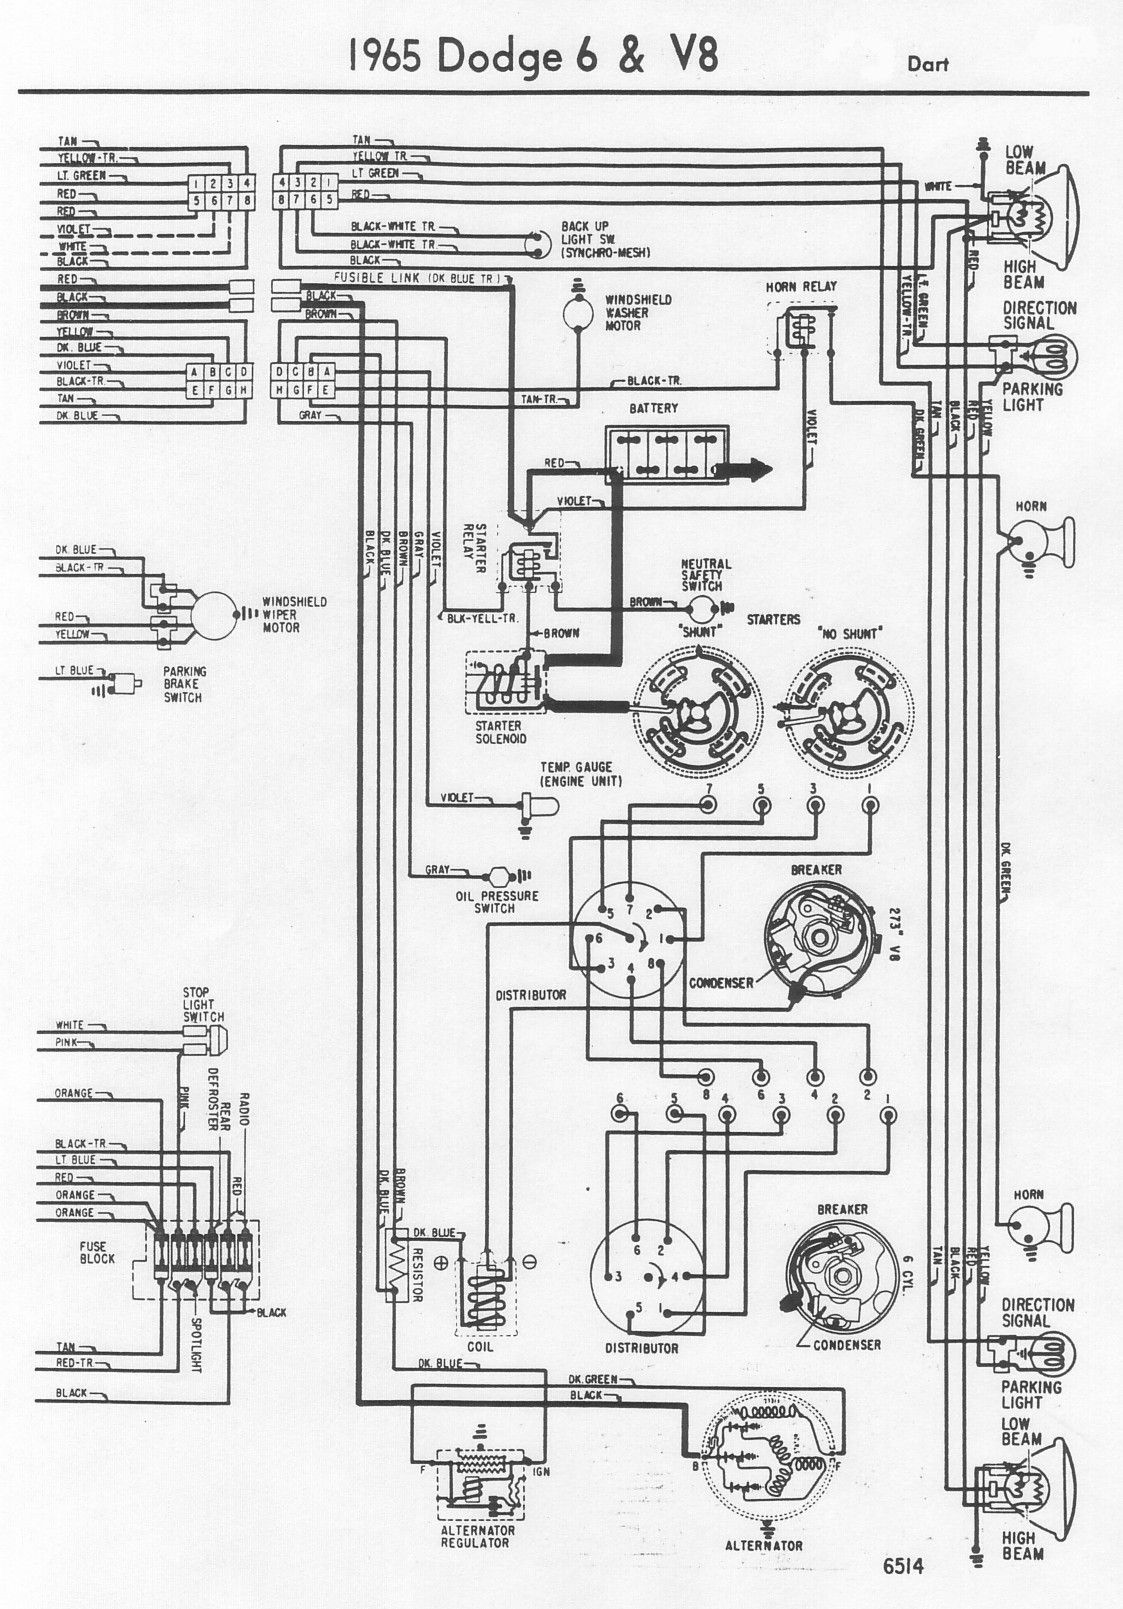 e99b41dc9815d0be0d10e90bba09b51b 65' front wiring diagram truck pinterest 1968 dodge coronet wiring diagram at readyjetset.co